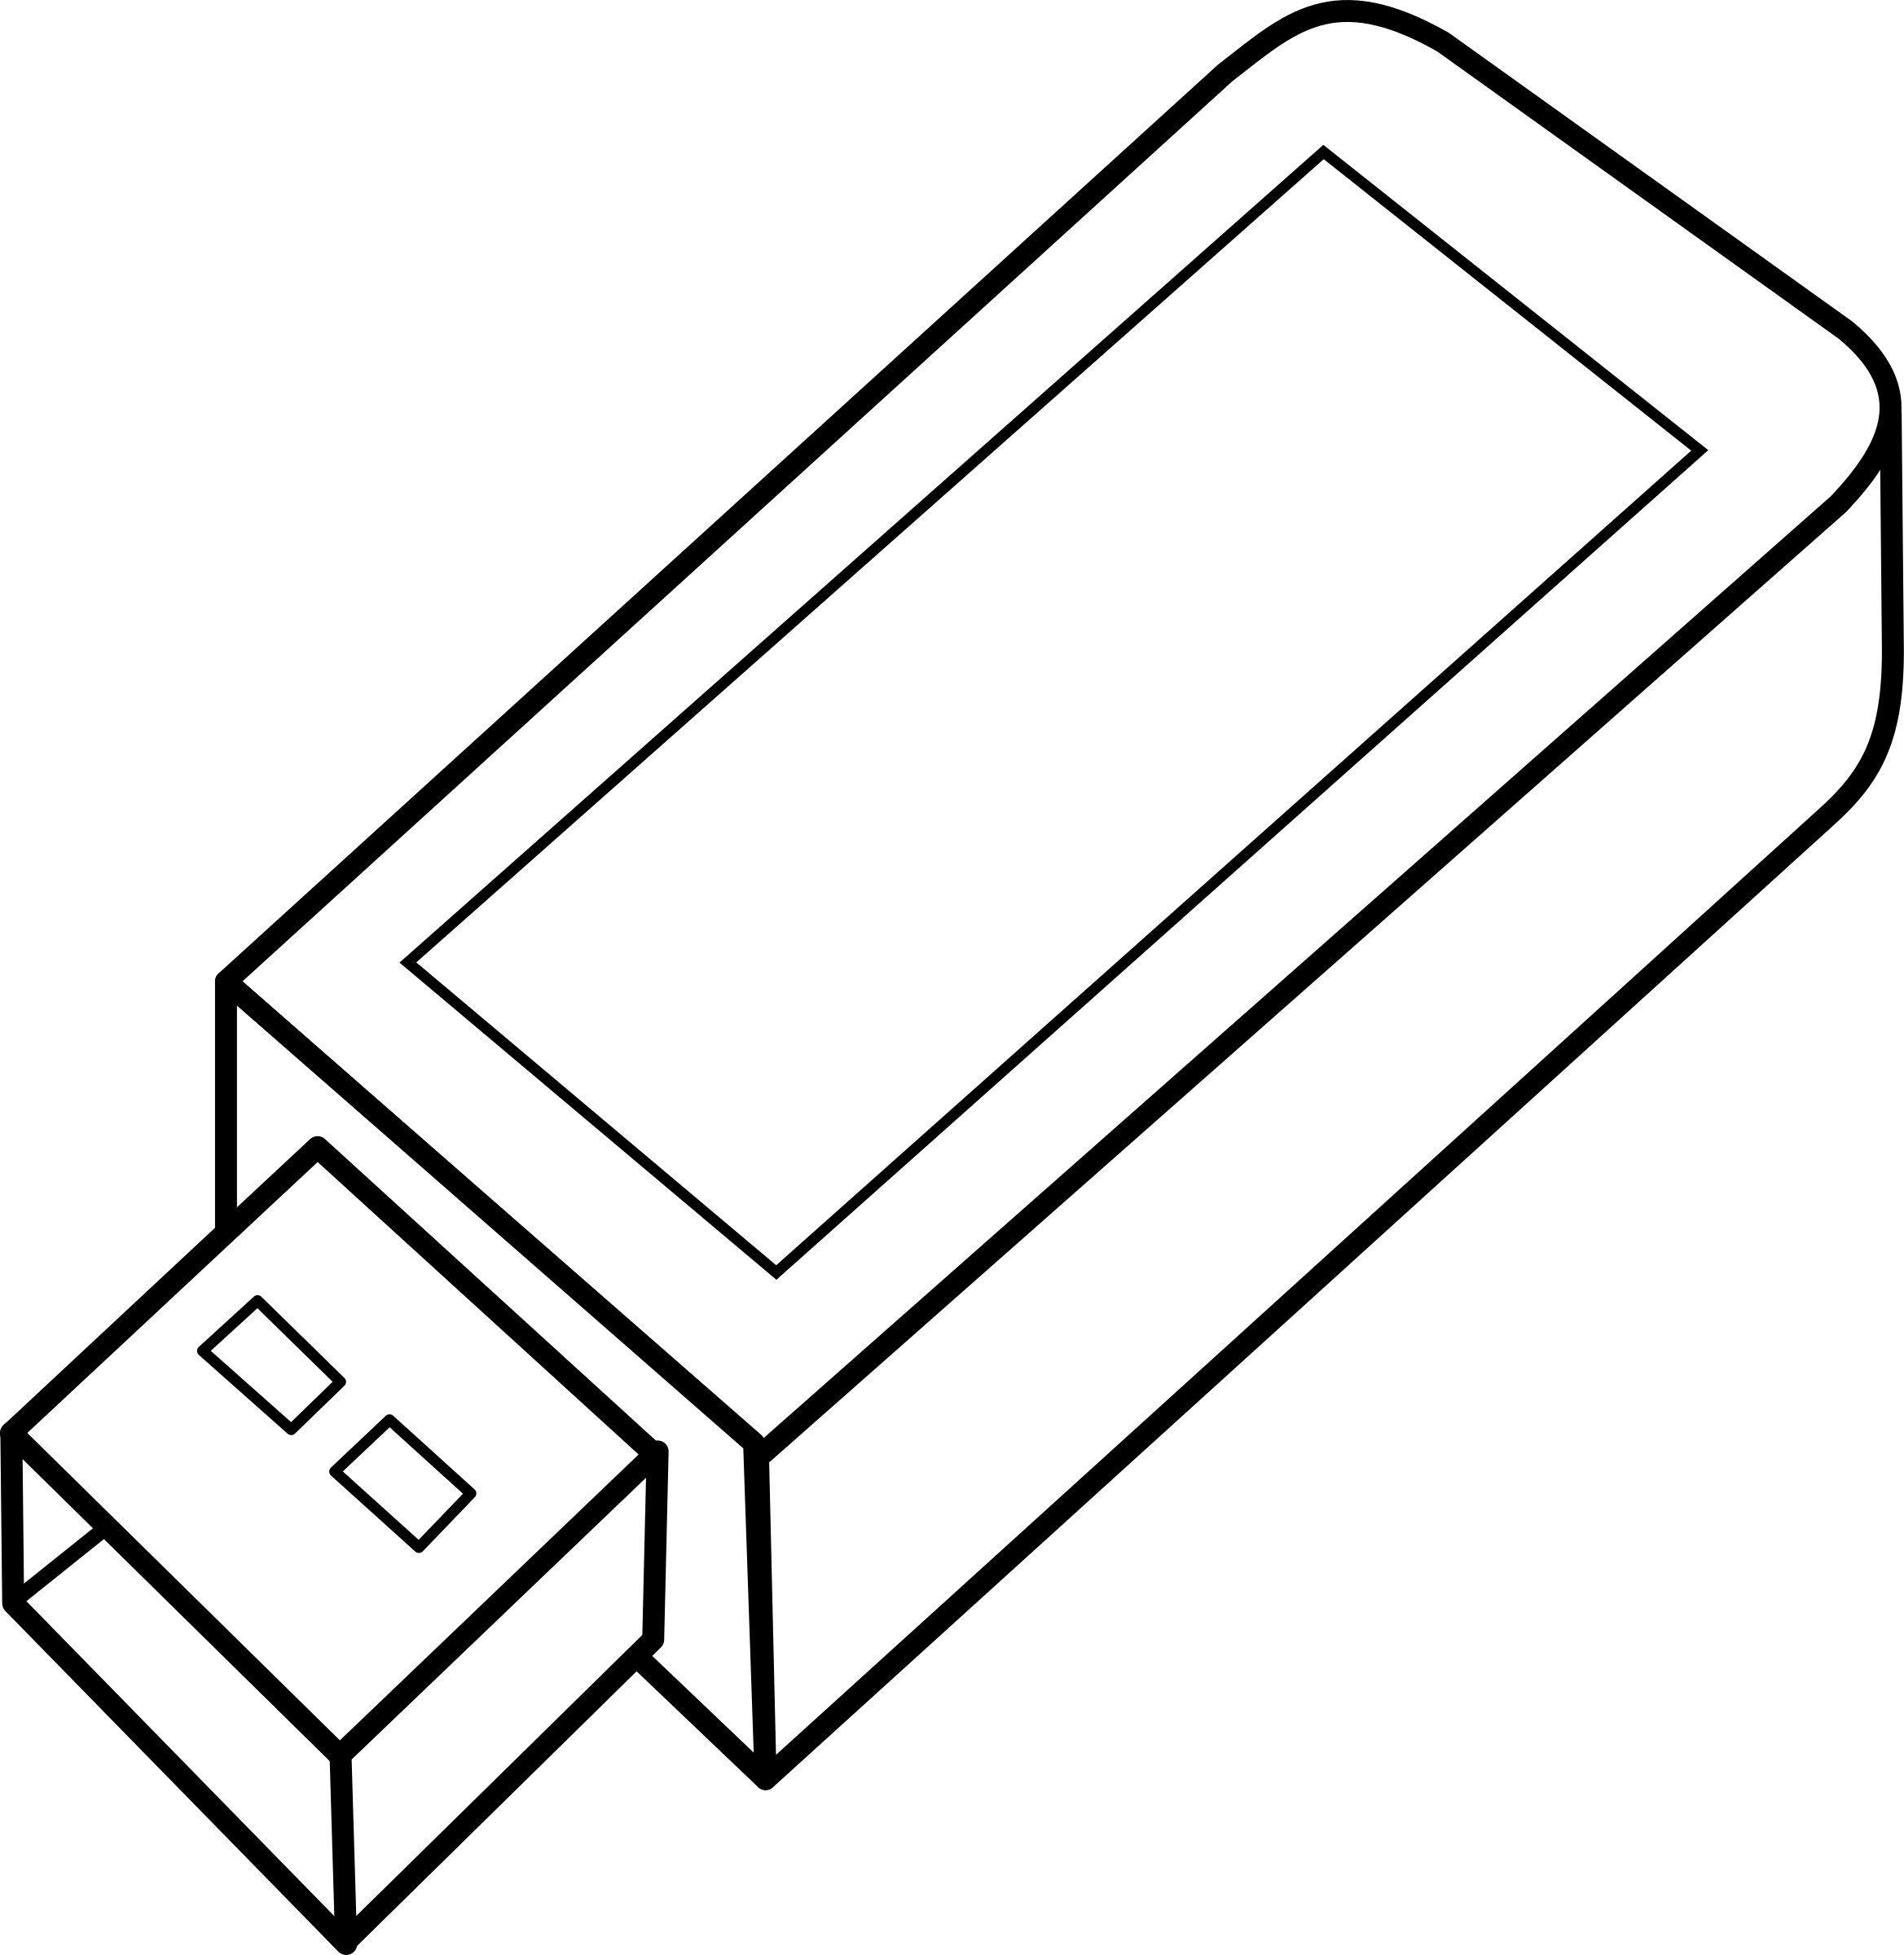 USB Key by lmproulx